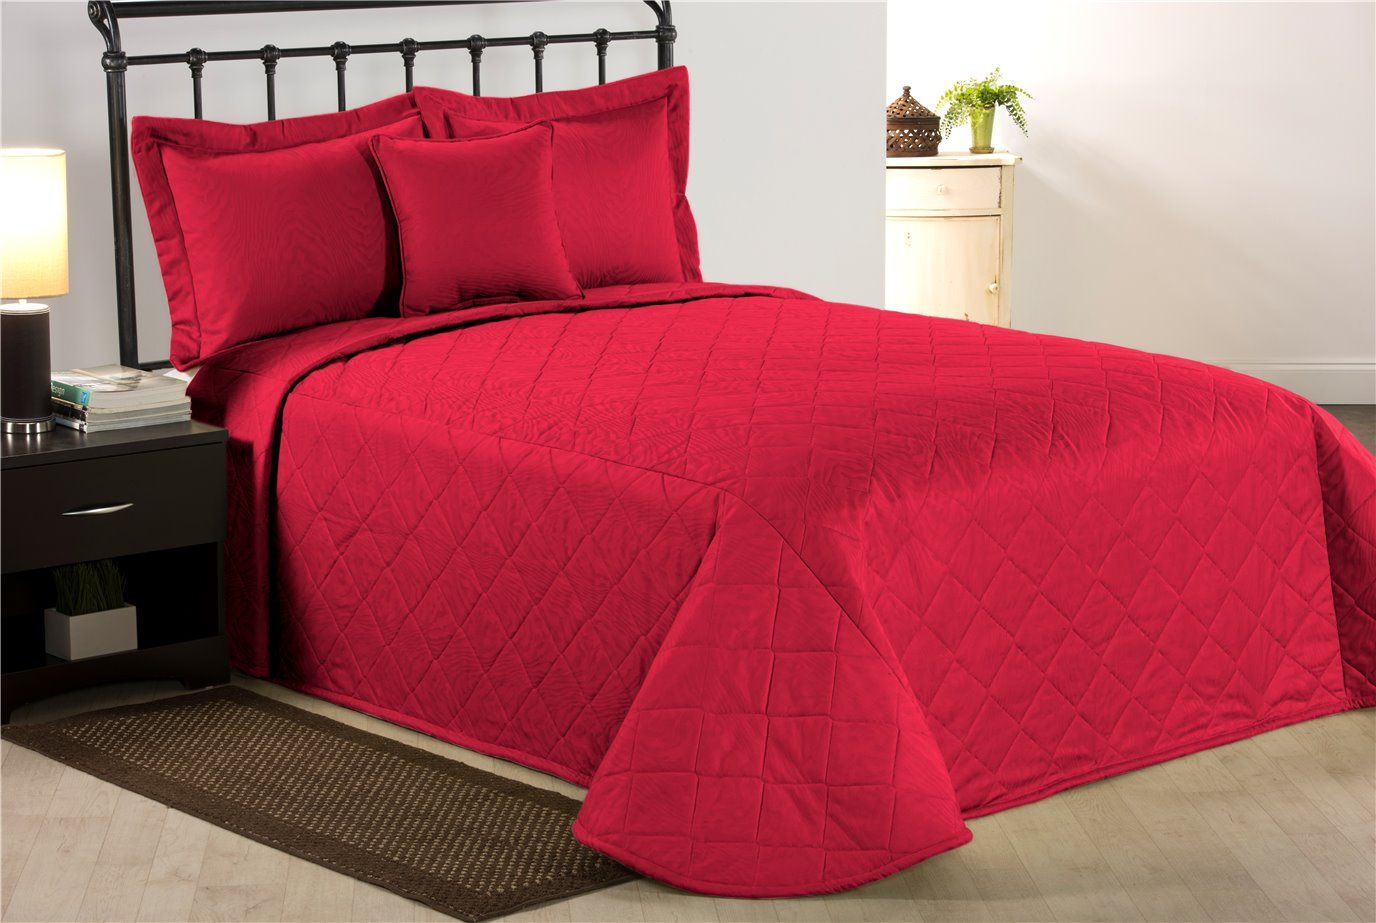 Red Moire California King Bedspread